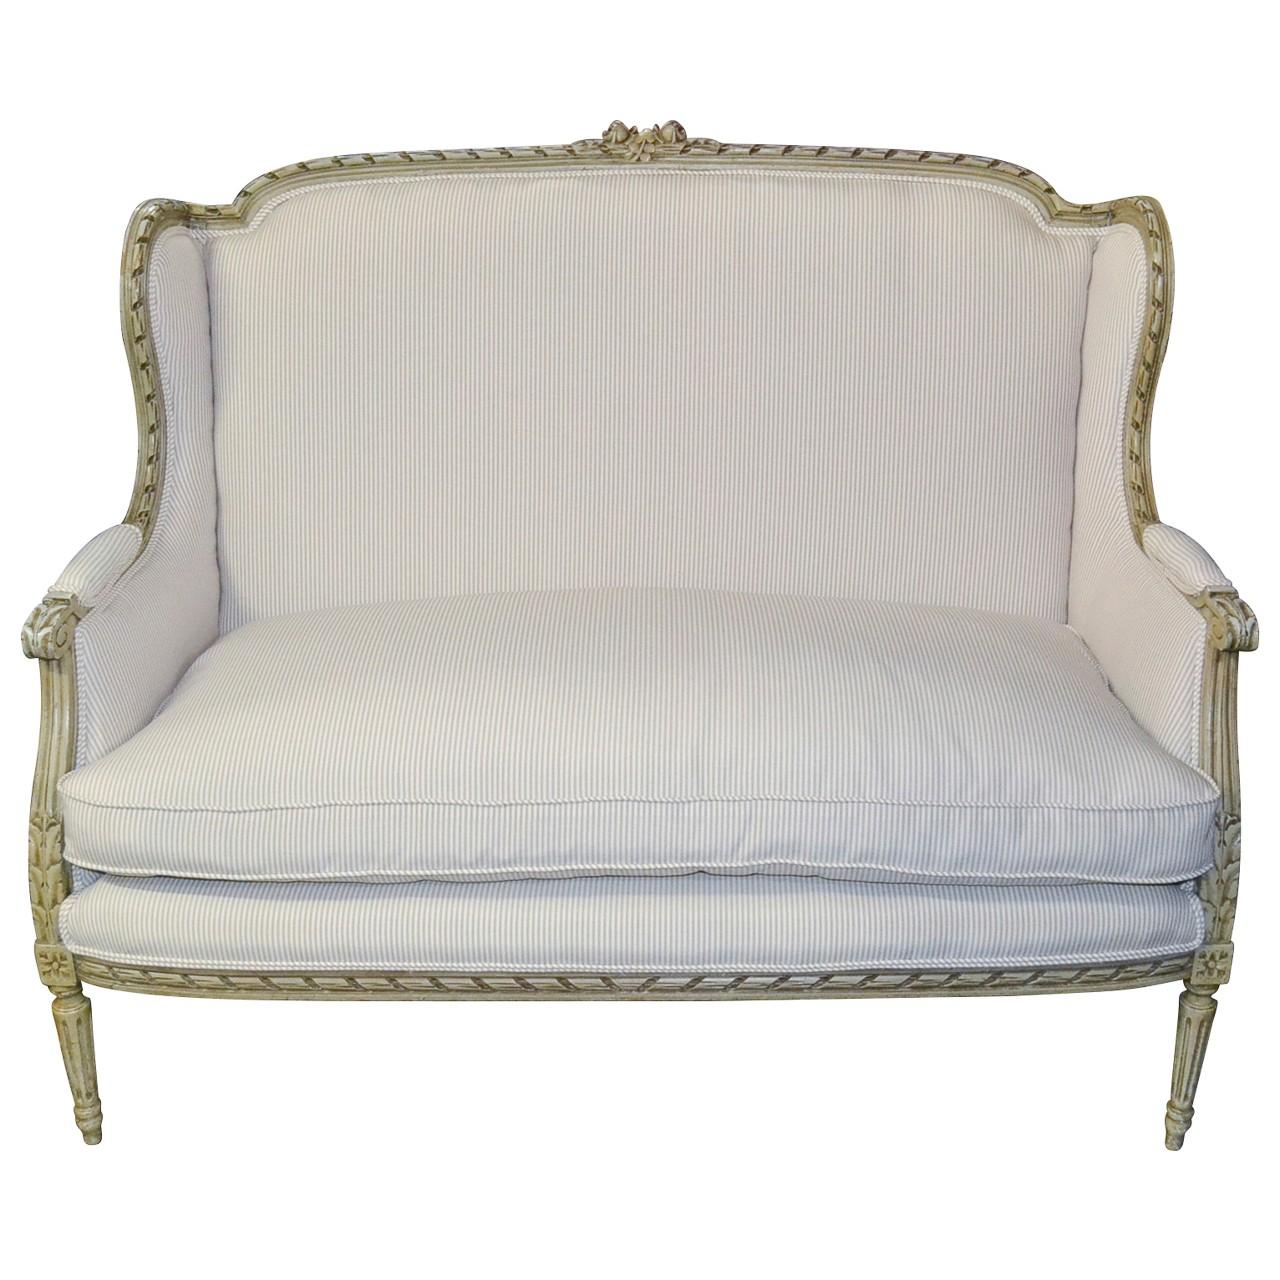 Merveilleux 19th Century French Louis XVI Settee Or Sofa For Sale